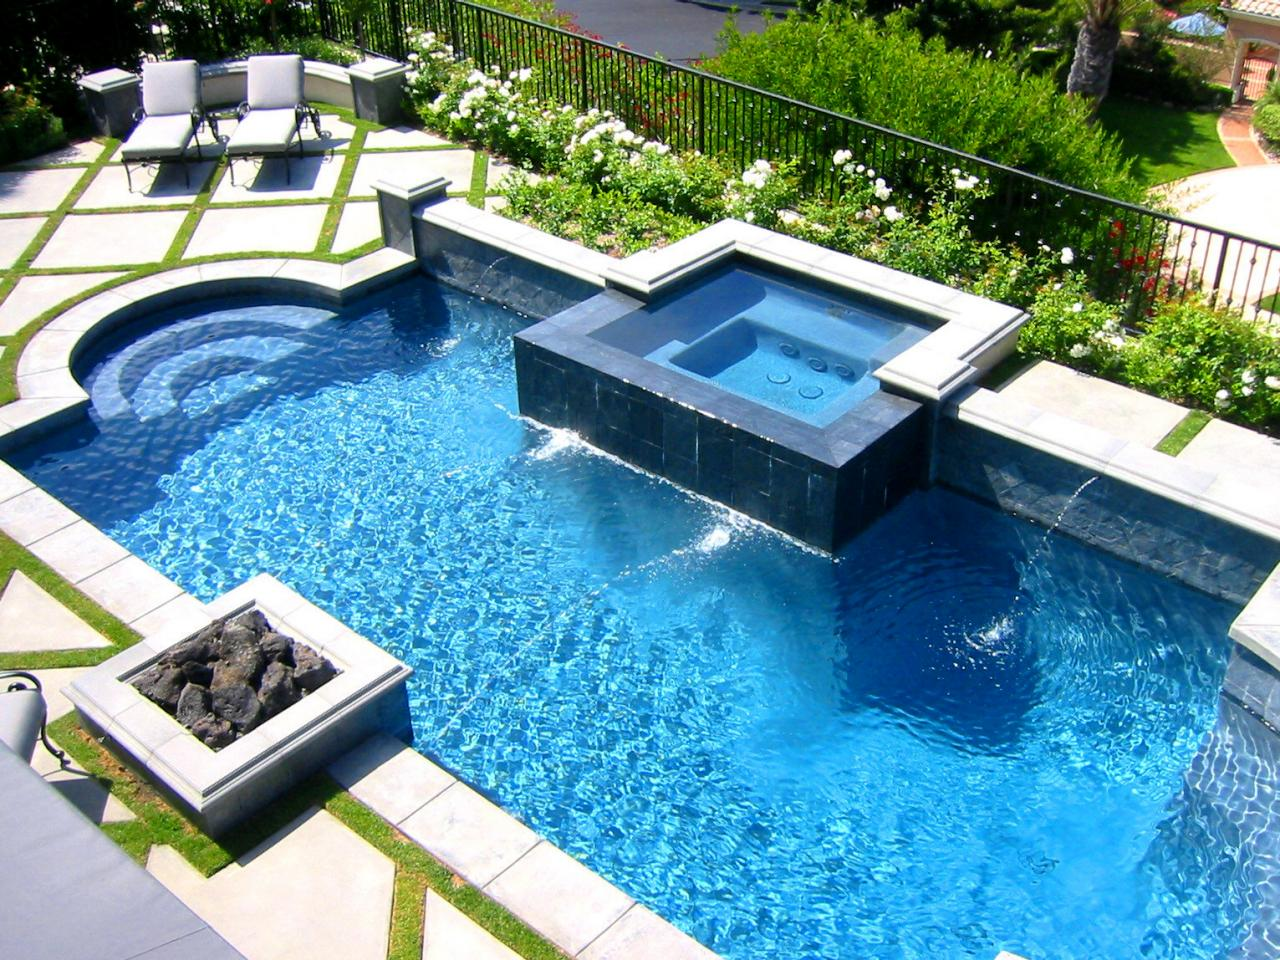 swimming pool designs with hot tub photo - 3